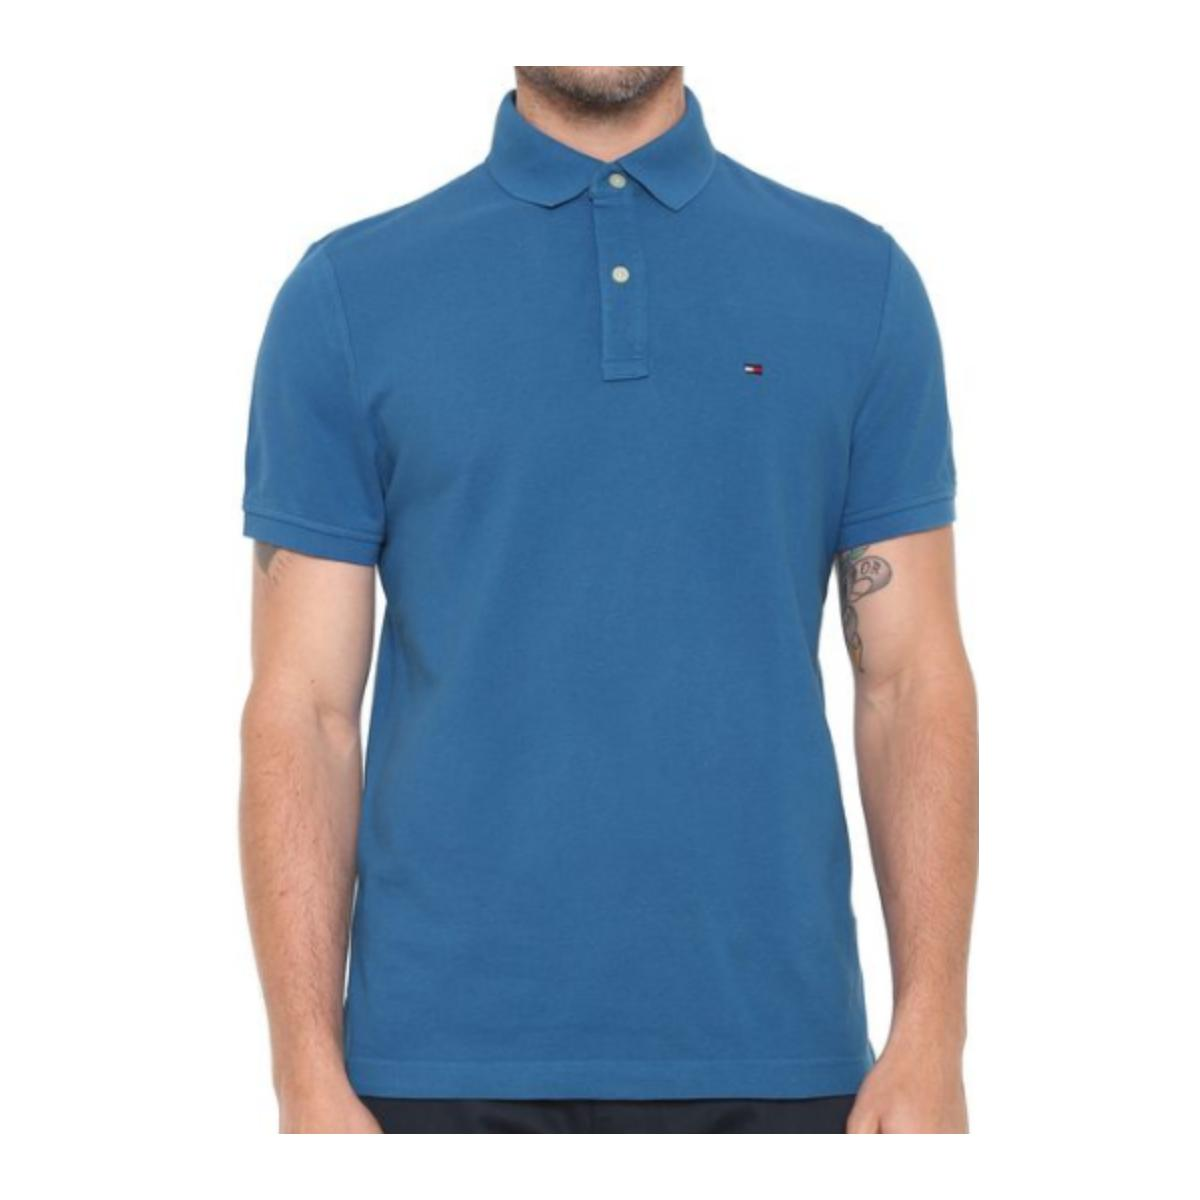 Camiseta Masculina Tommy Th78d1788 Azul